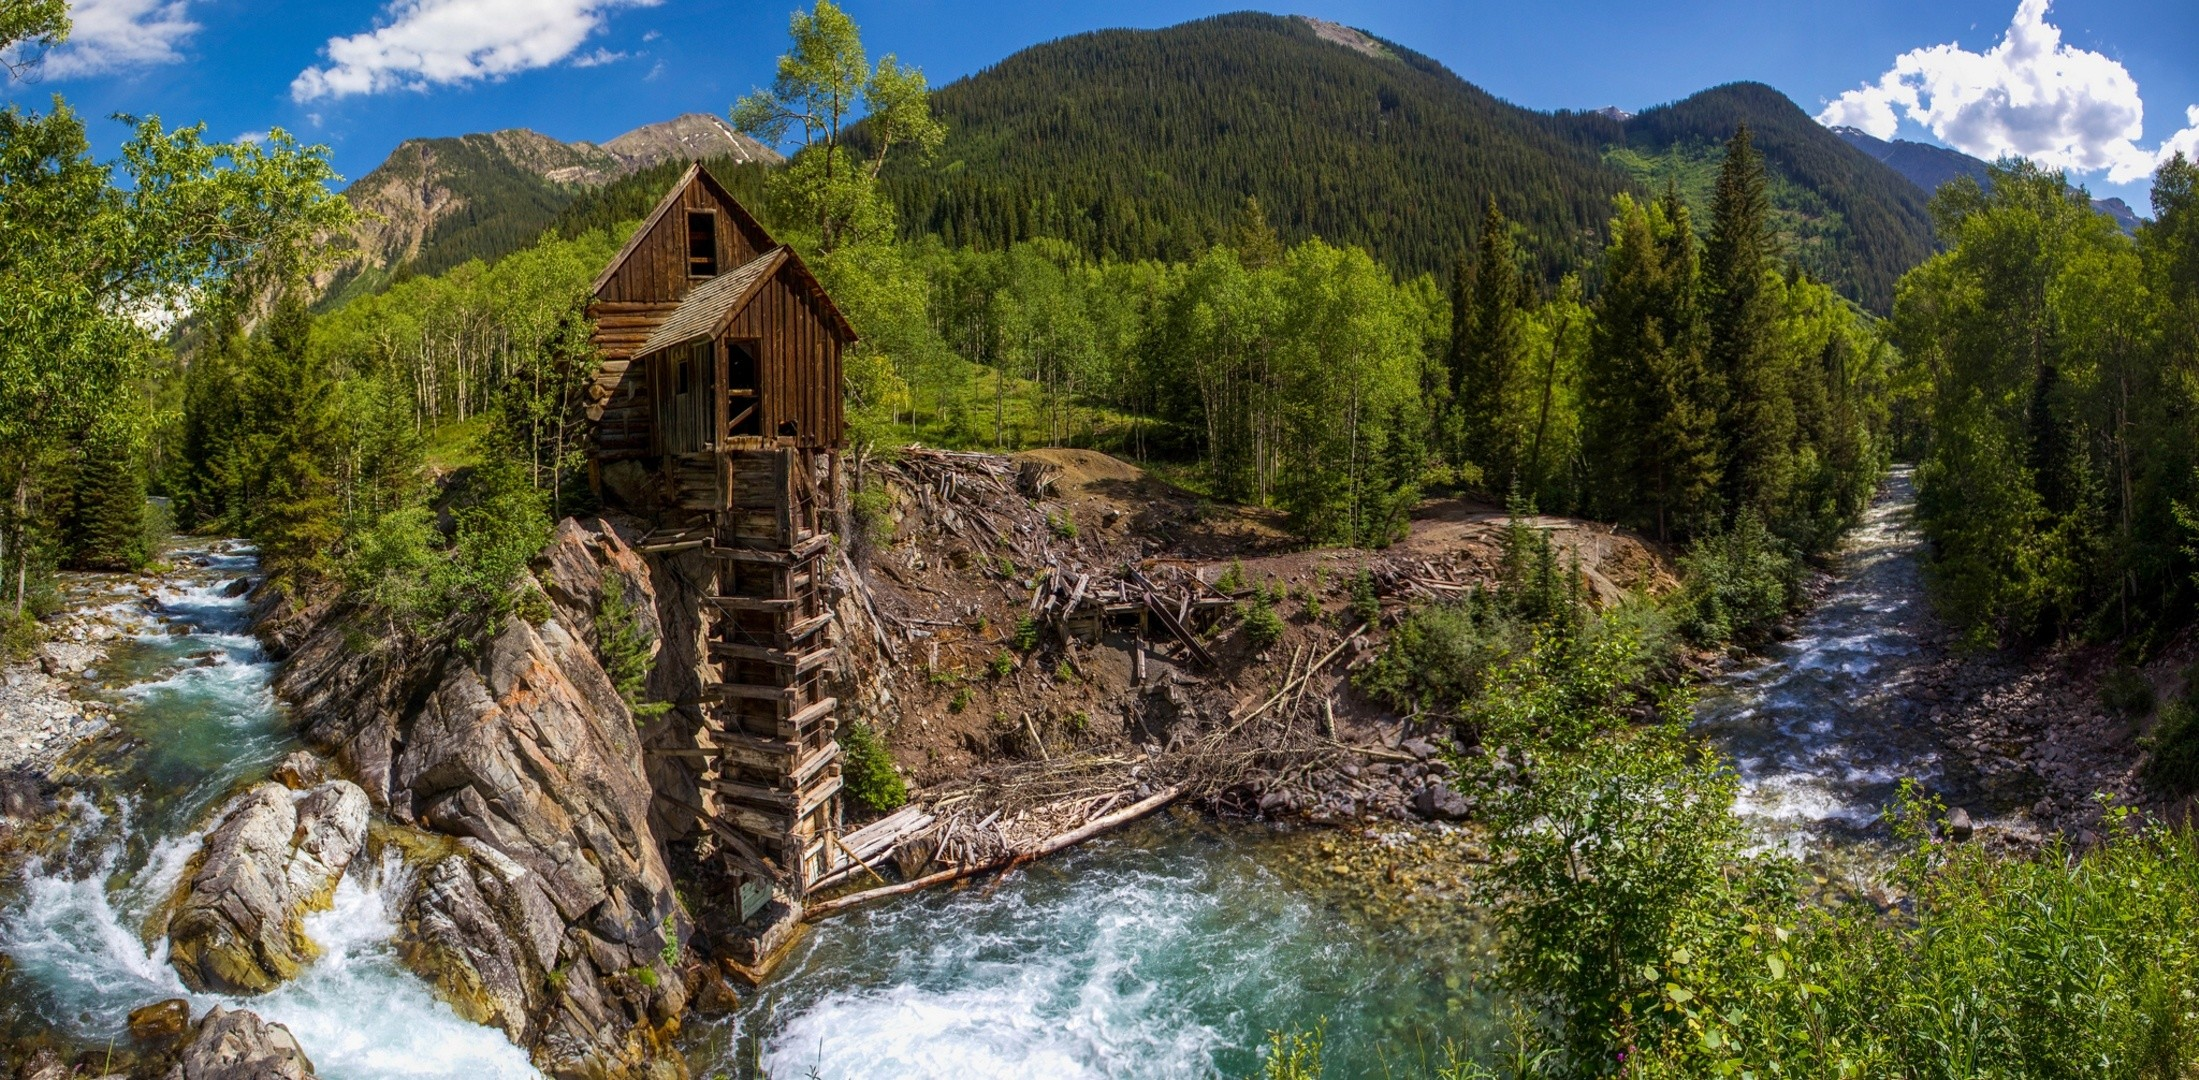 2199x1080 Crystal Colorado a water mill river forest trees mountains panorama  wallpaper |  | 169320 | WallpaperUP